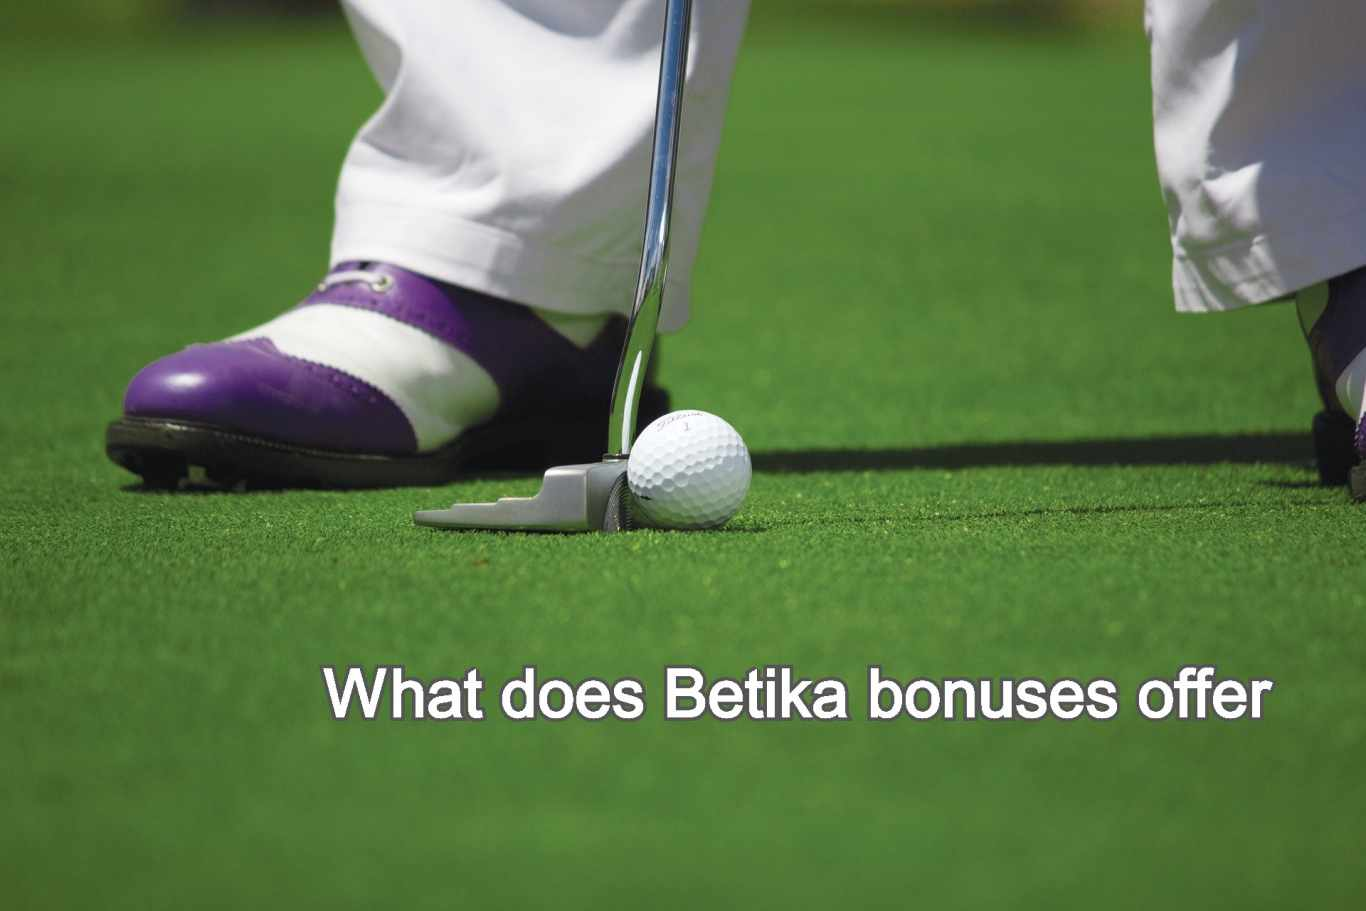 Betika bonuses offer